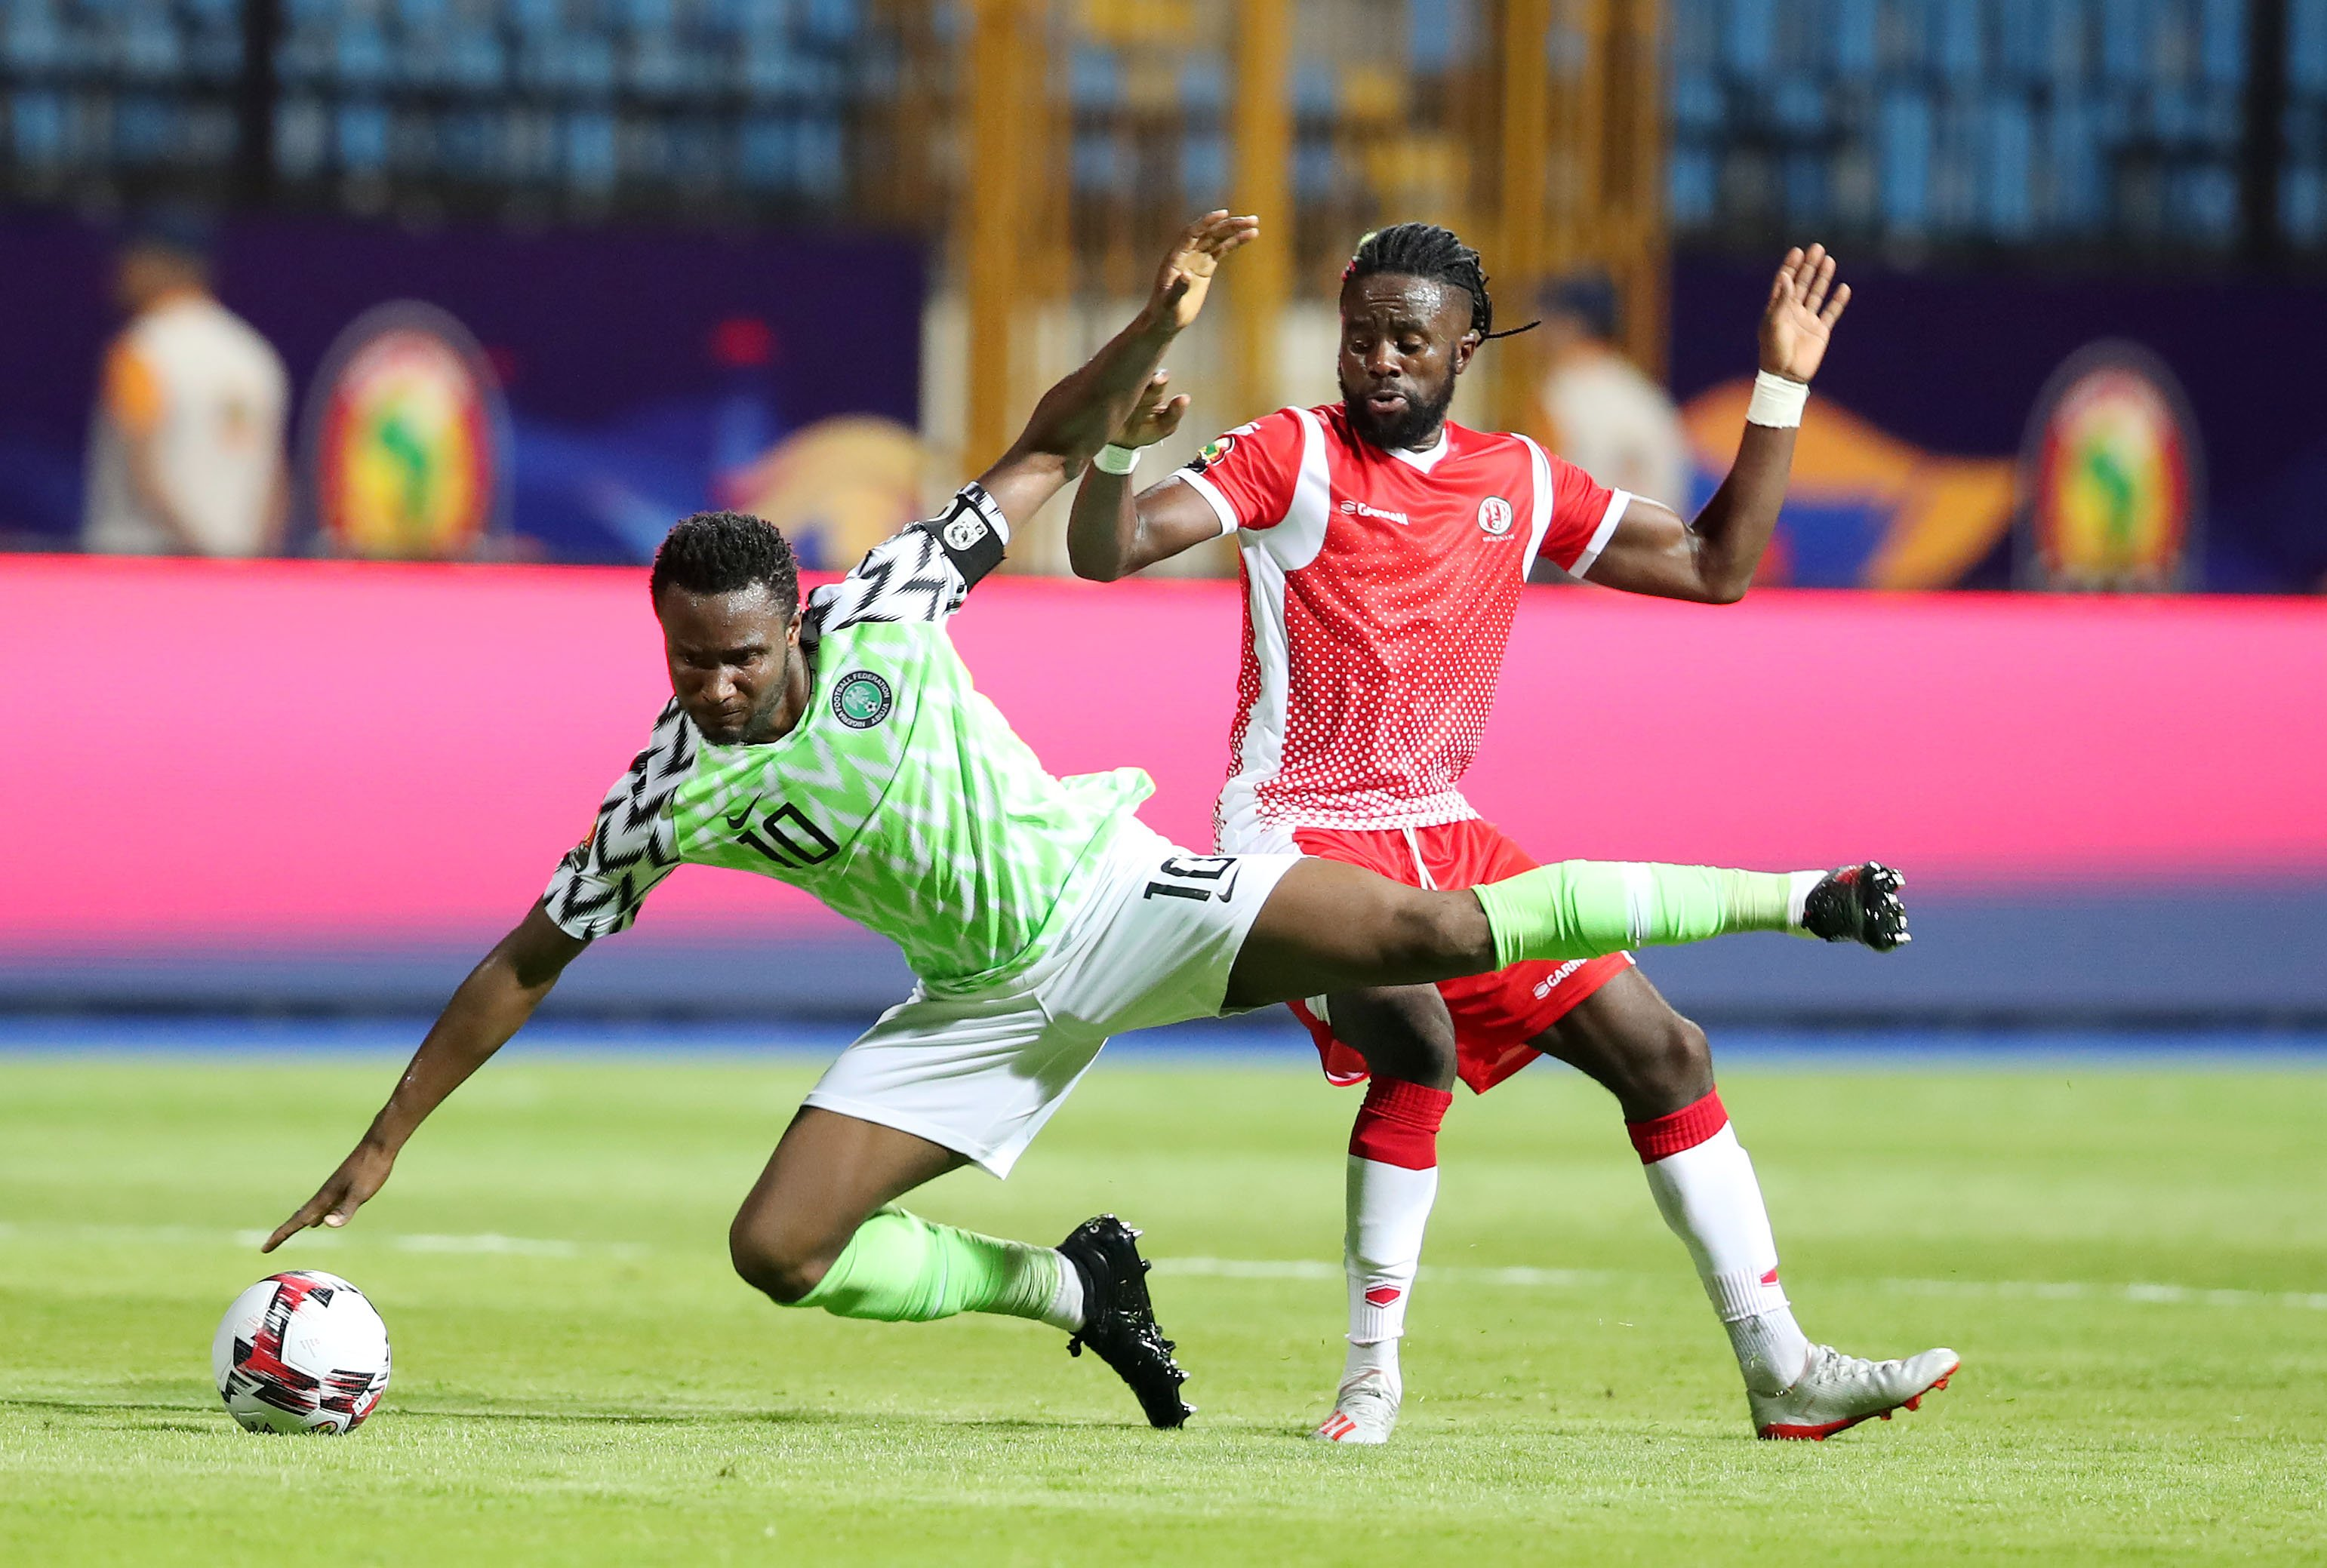 AFCON 2019: Super Sub Ighalo Fires Super Eagles Past Stubborn Burundi